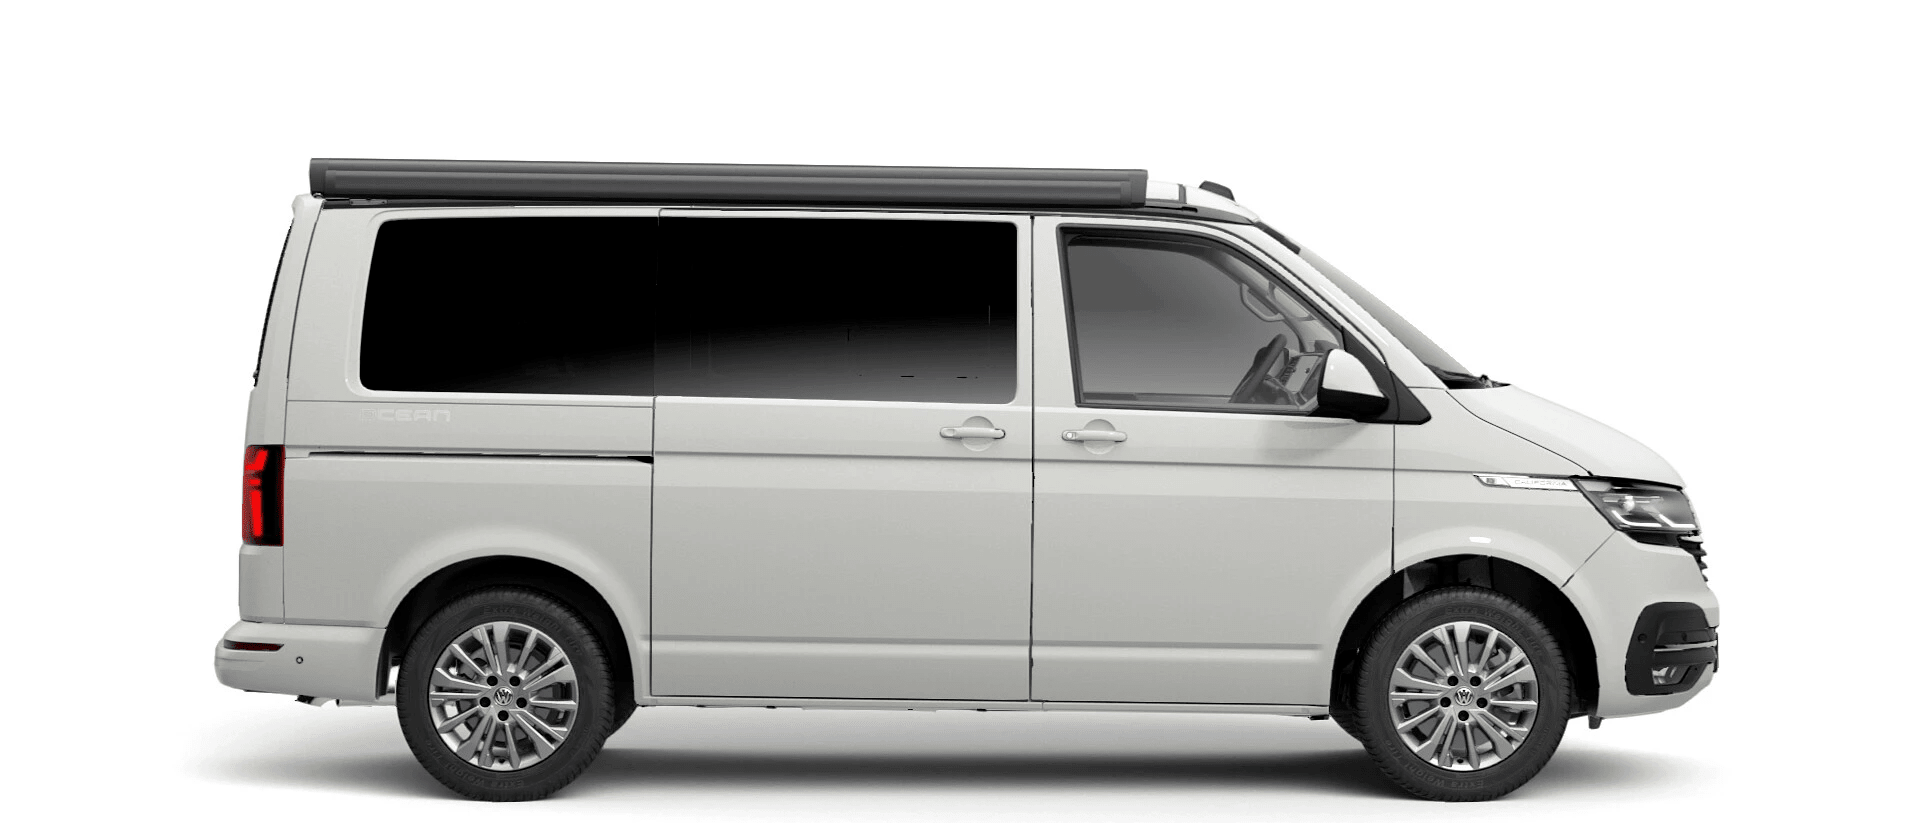 Volkswagen Van Range California - Available In Candy White